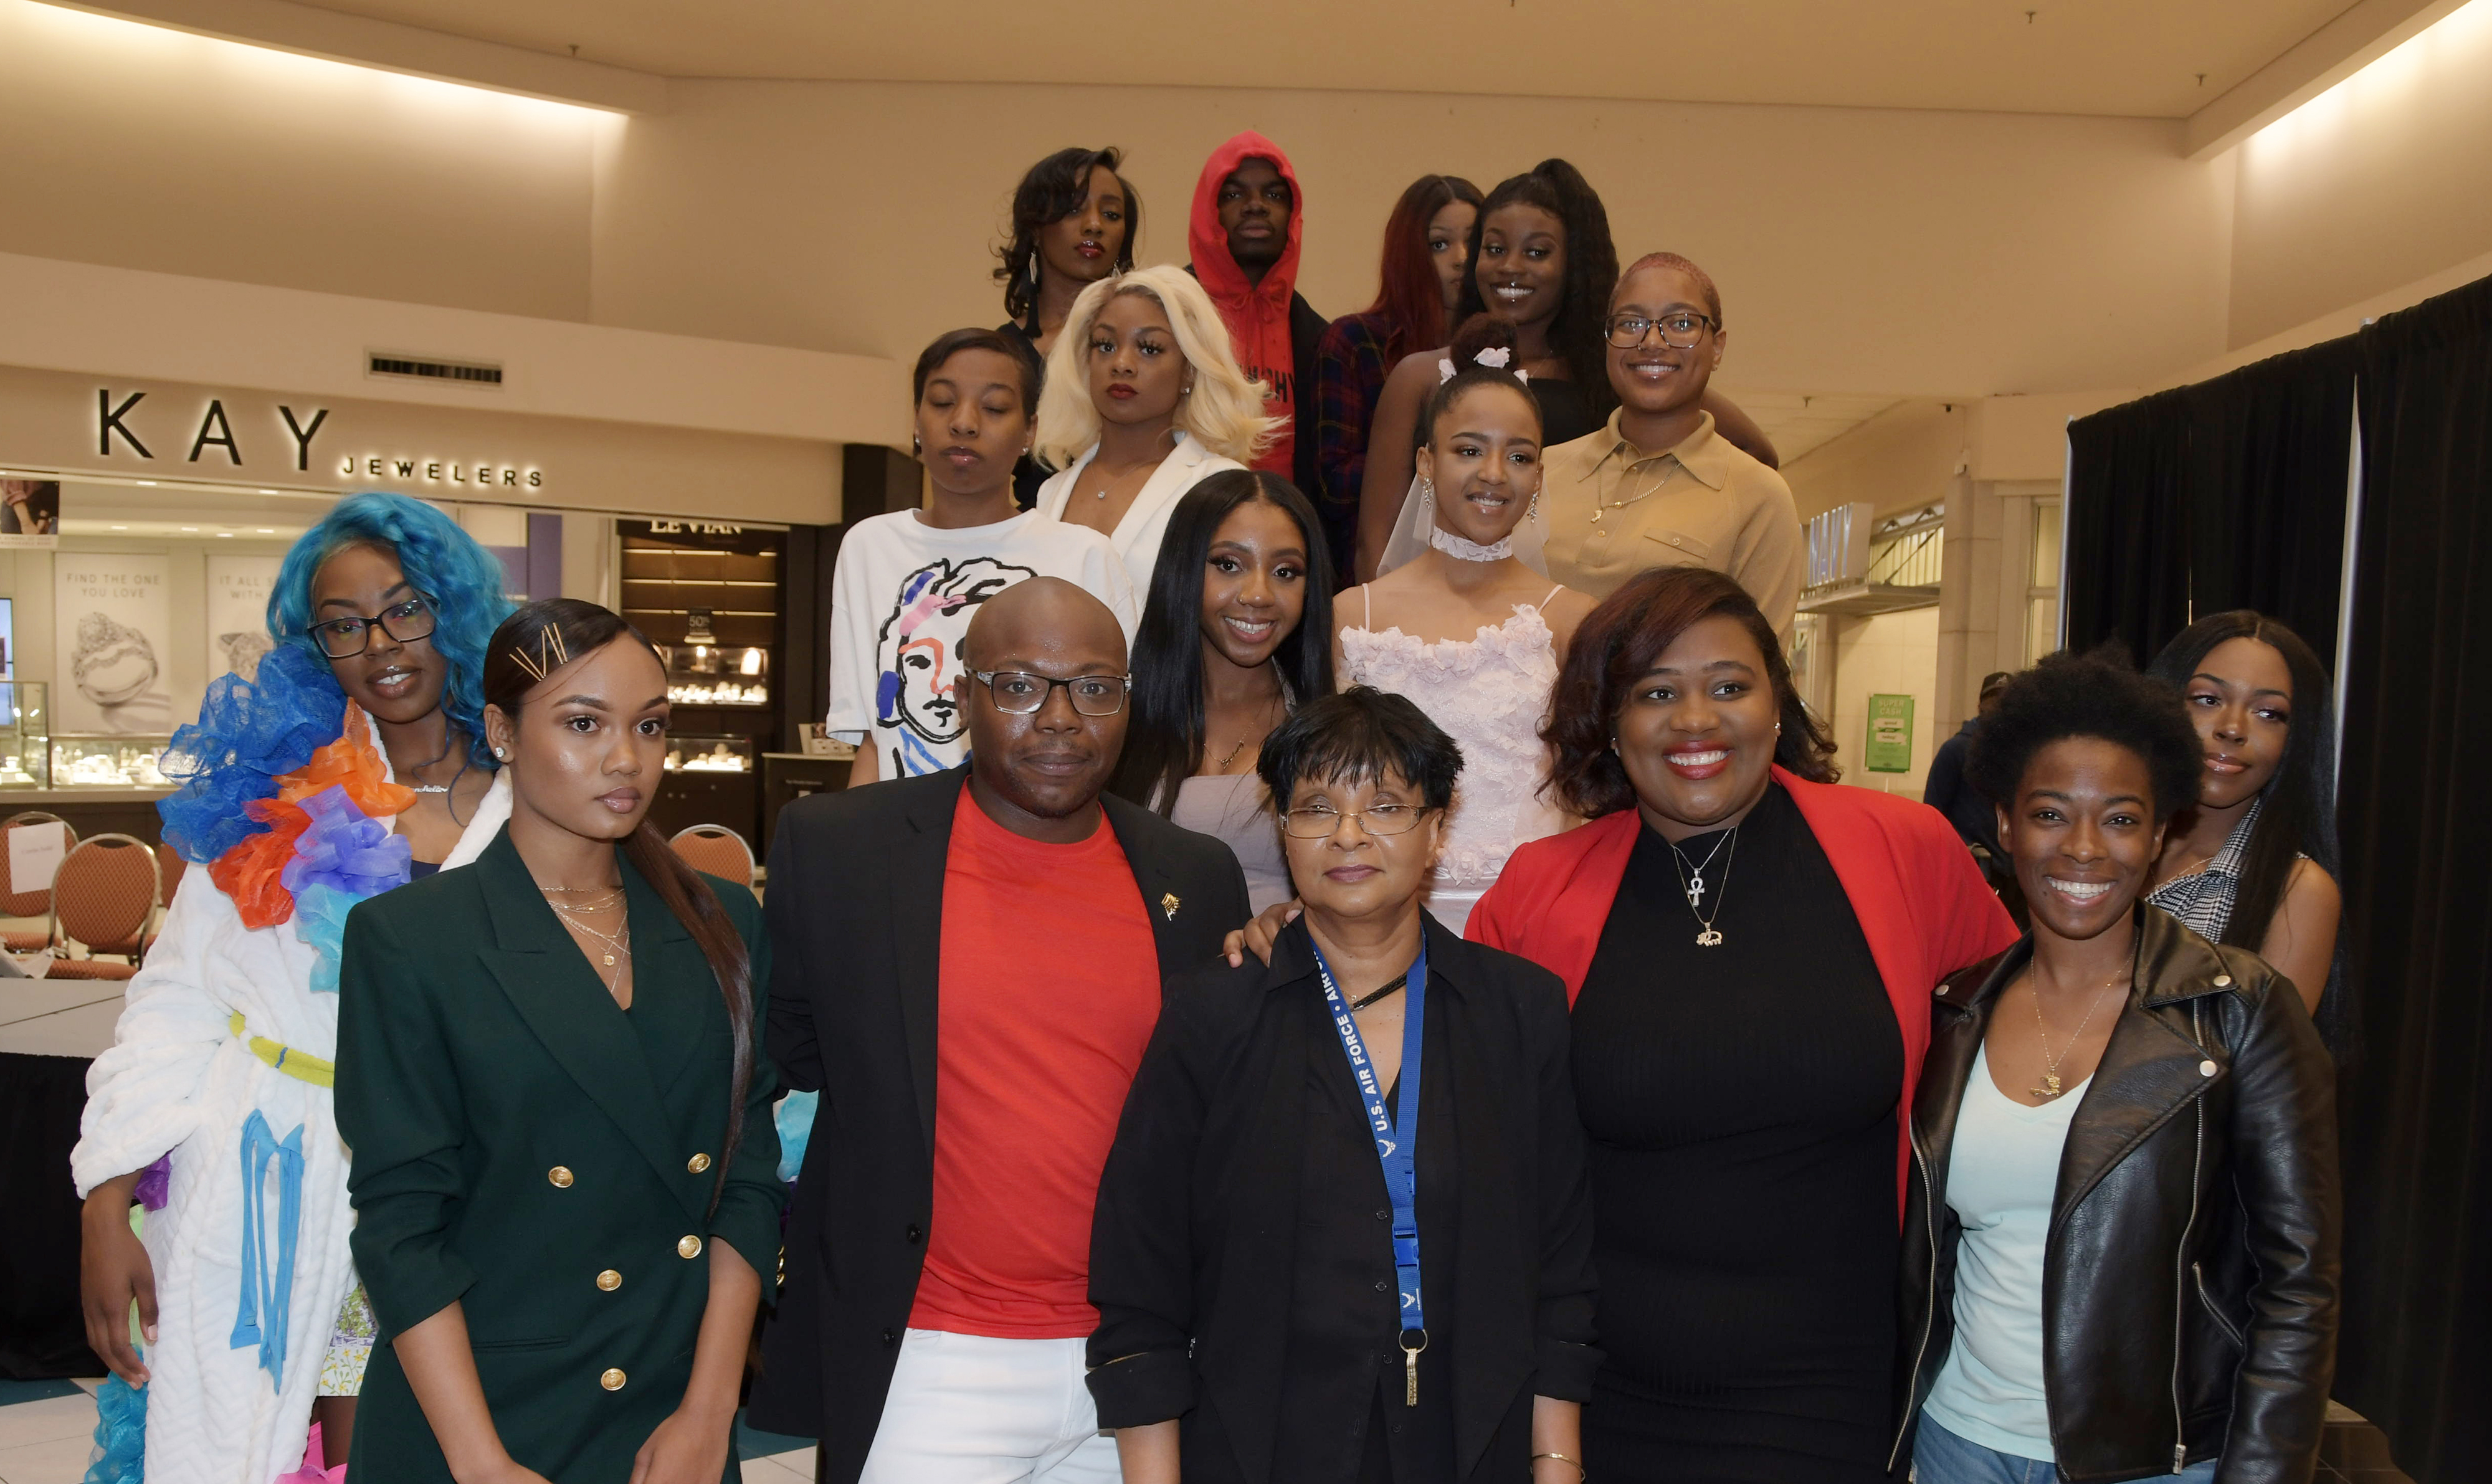 These Textile and Apparel Studies students showed off their fashion designing creations during a April 27 show at the Dover Mall. Dr. Damayanthie Eluwawalage, assistant professor, (bottom row, third from the left), was so impressed by their work, she persuaded the Dover Mall executives to allow student to put on a fashion show there for the public.